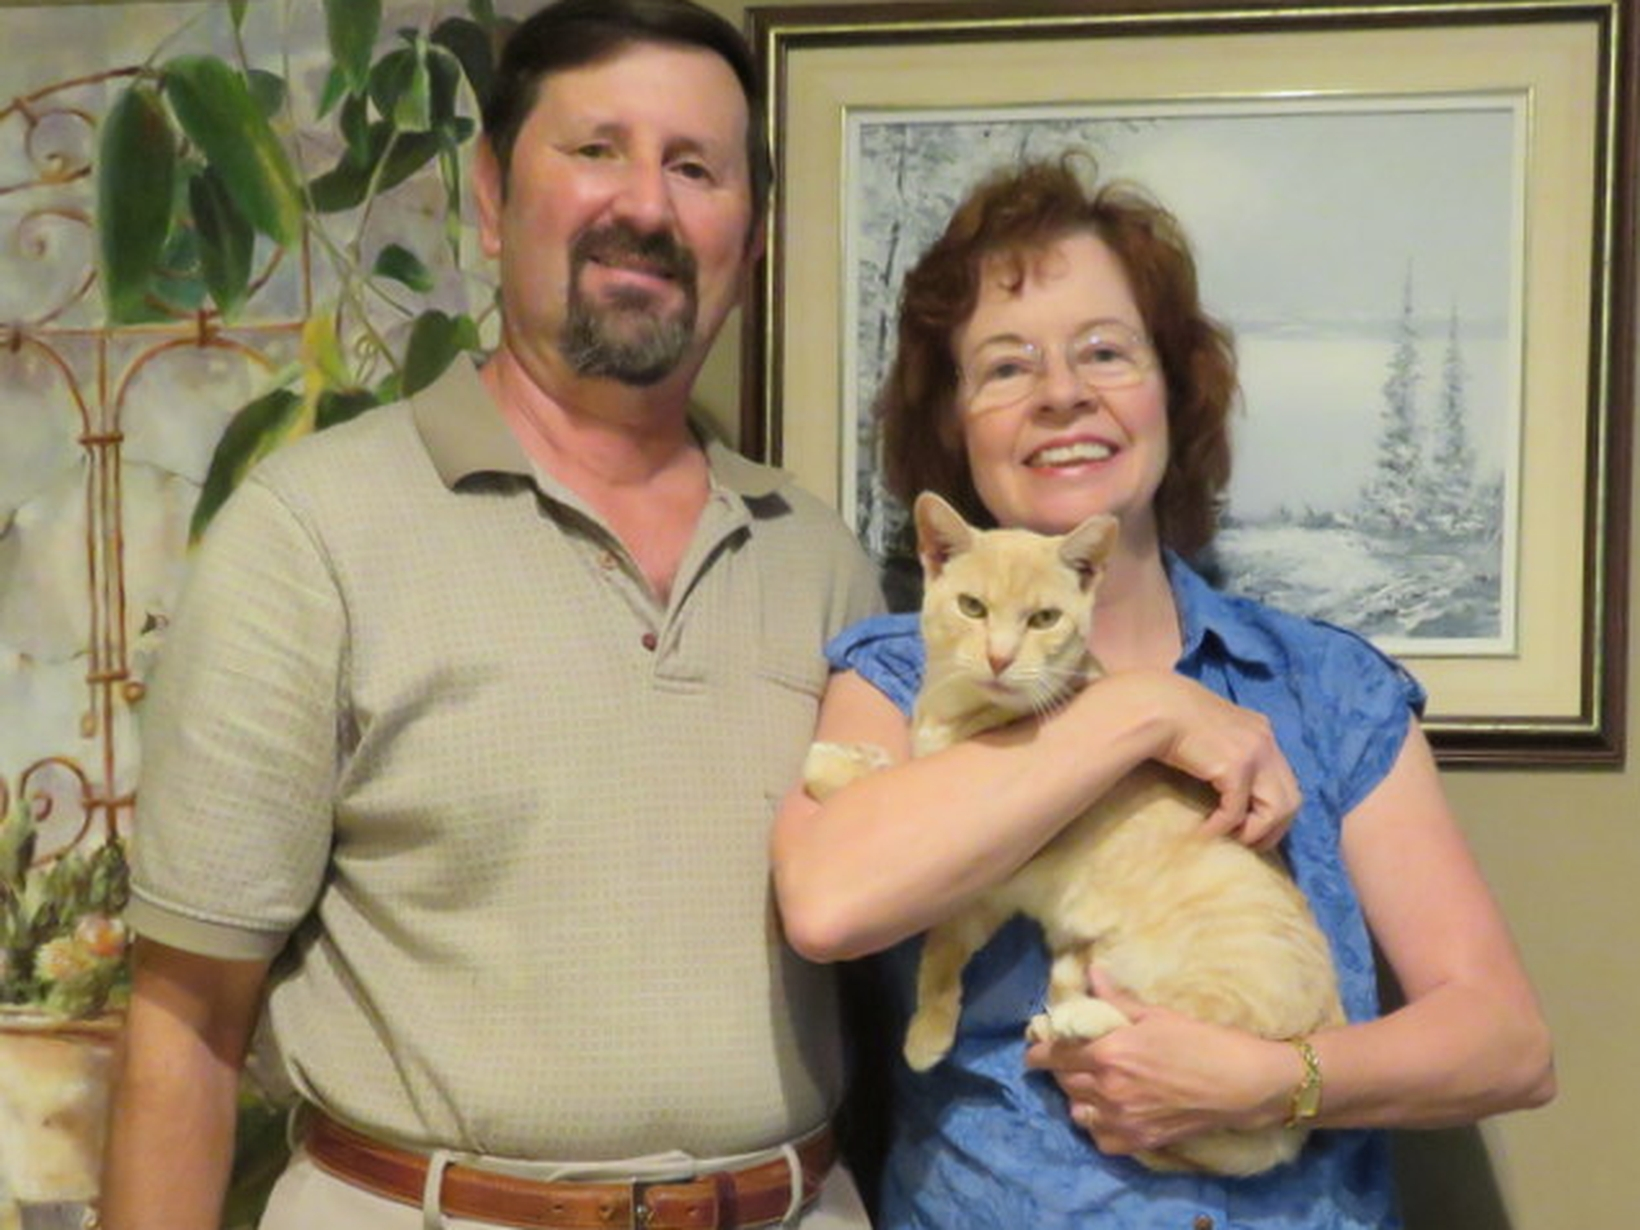 Janice & Steven from Stratford, Ontario, Canada